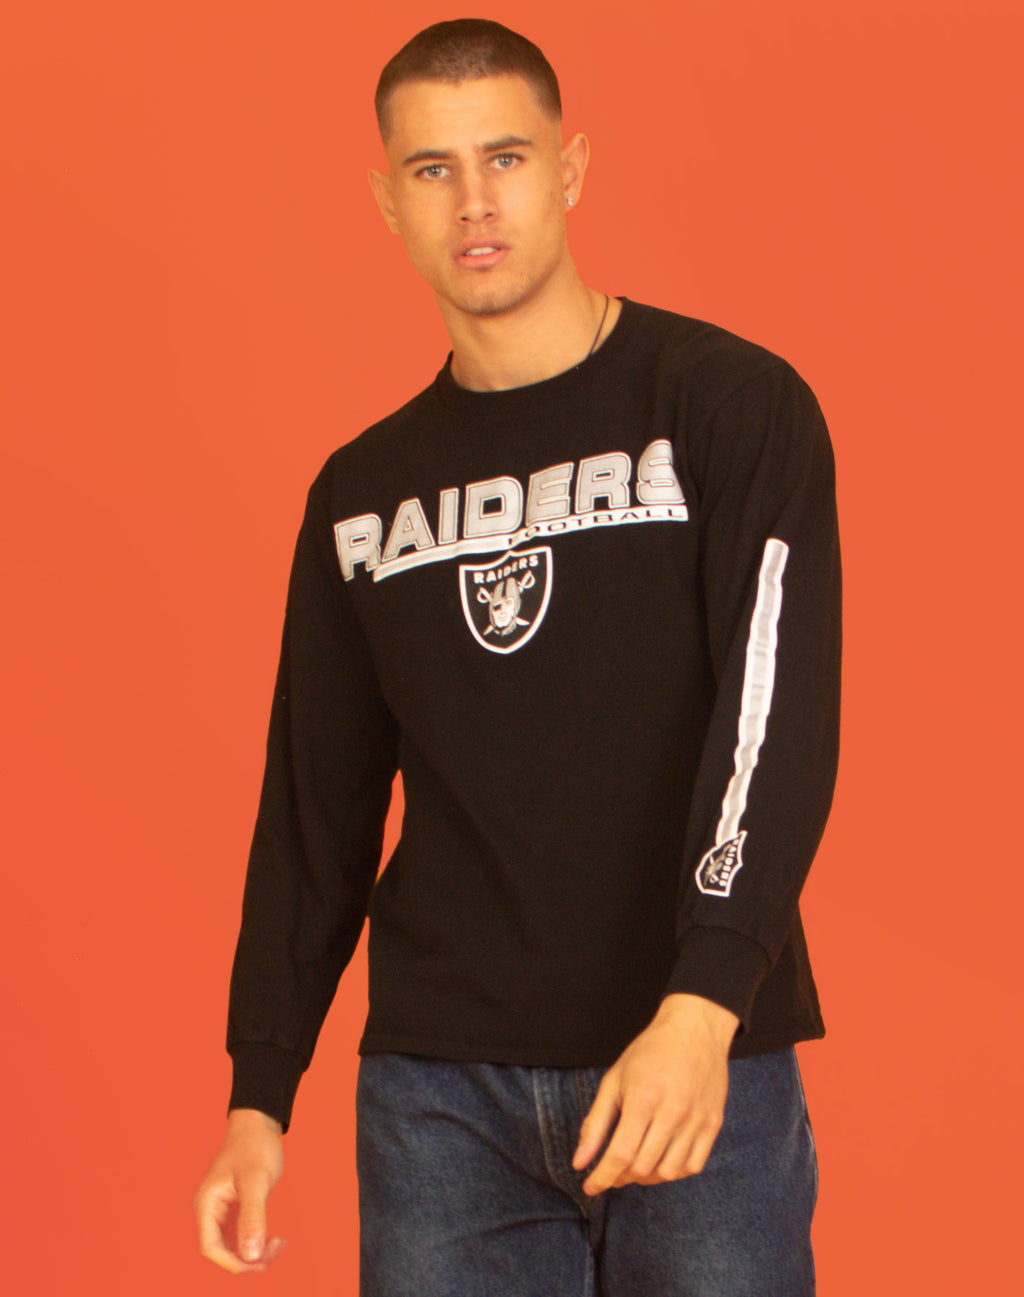 RAIDERS BLACK T-SHIRT